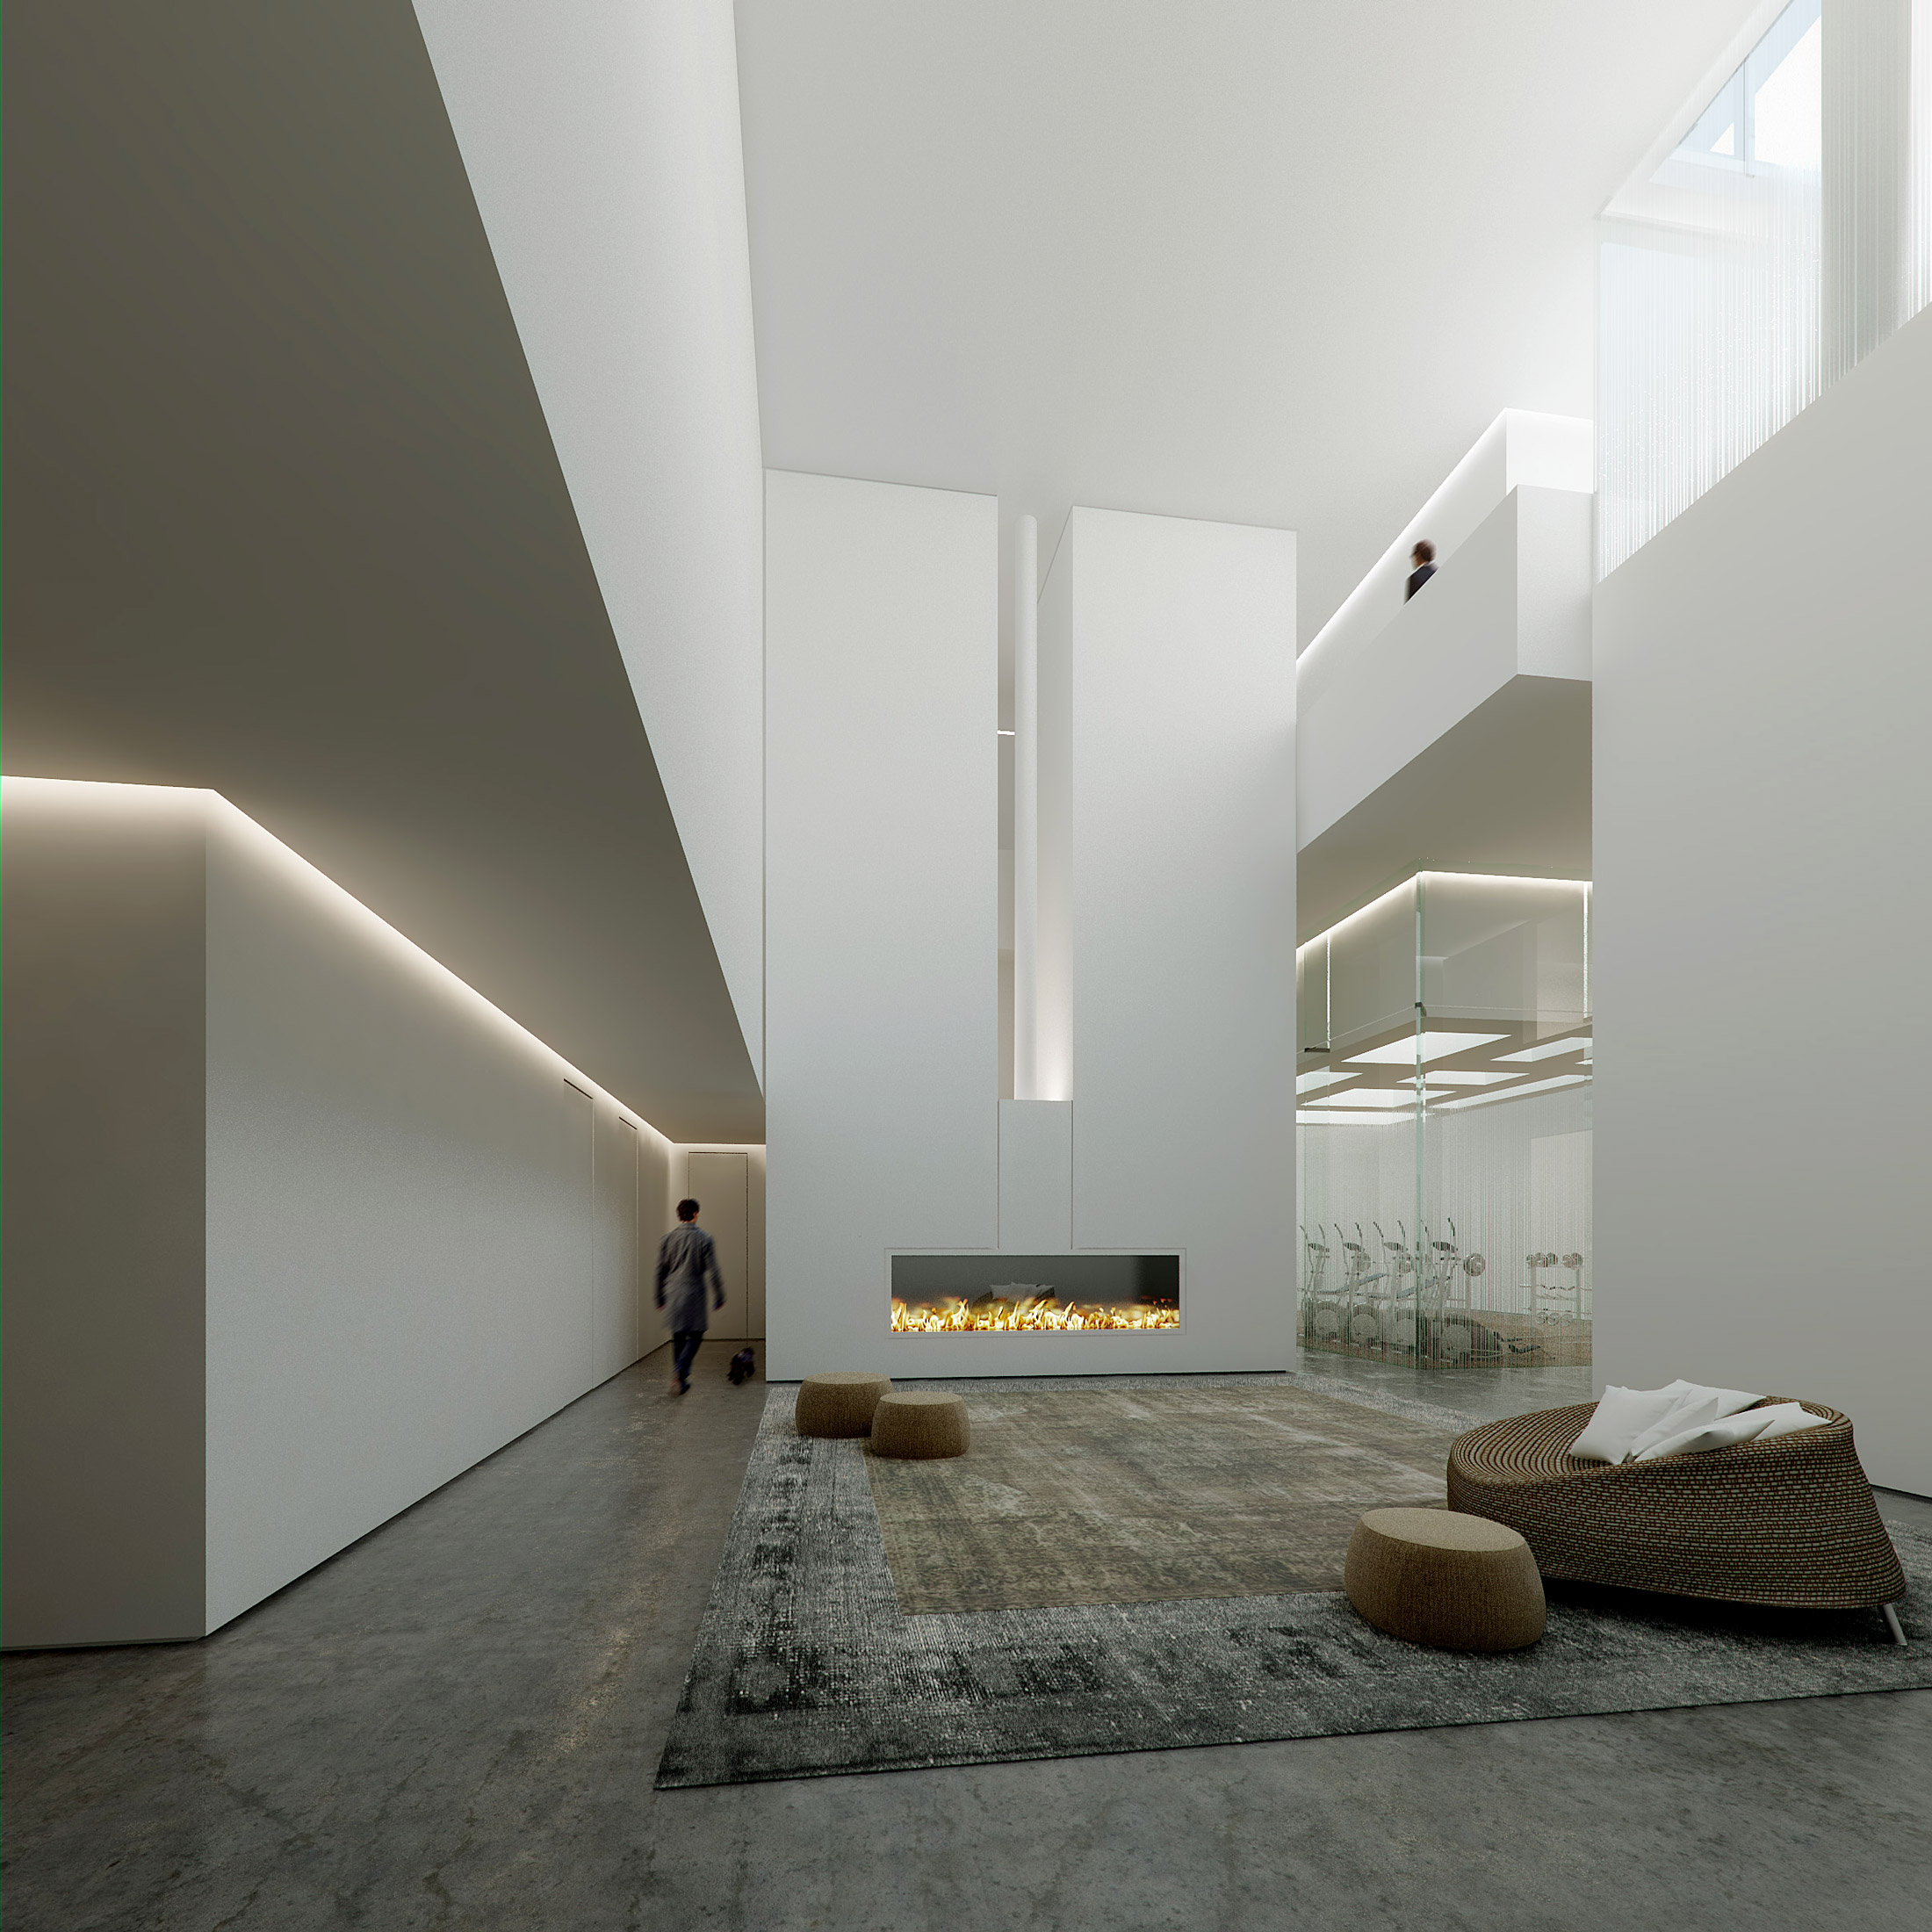 Architectural Rendering of the interior of the 100 Norfolk Street project located on the Lower East Side, New York City